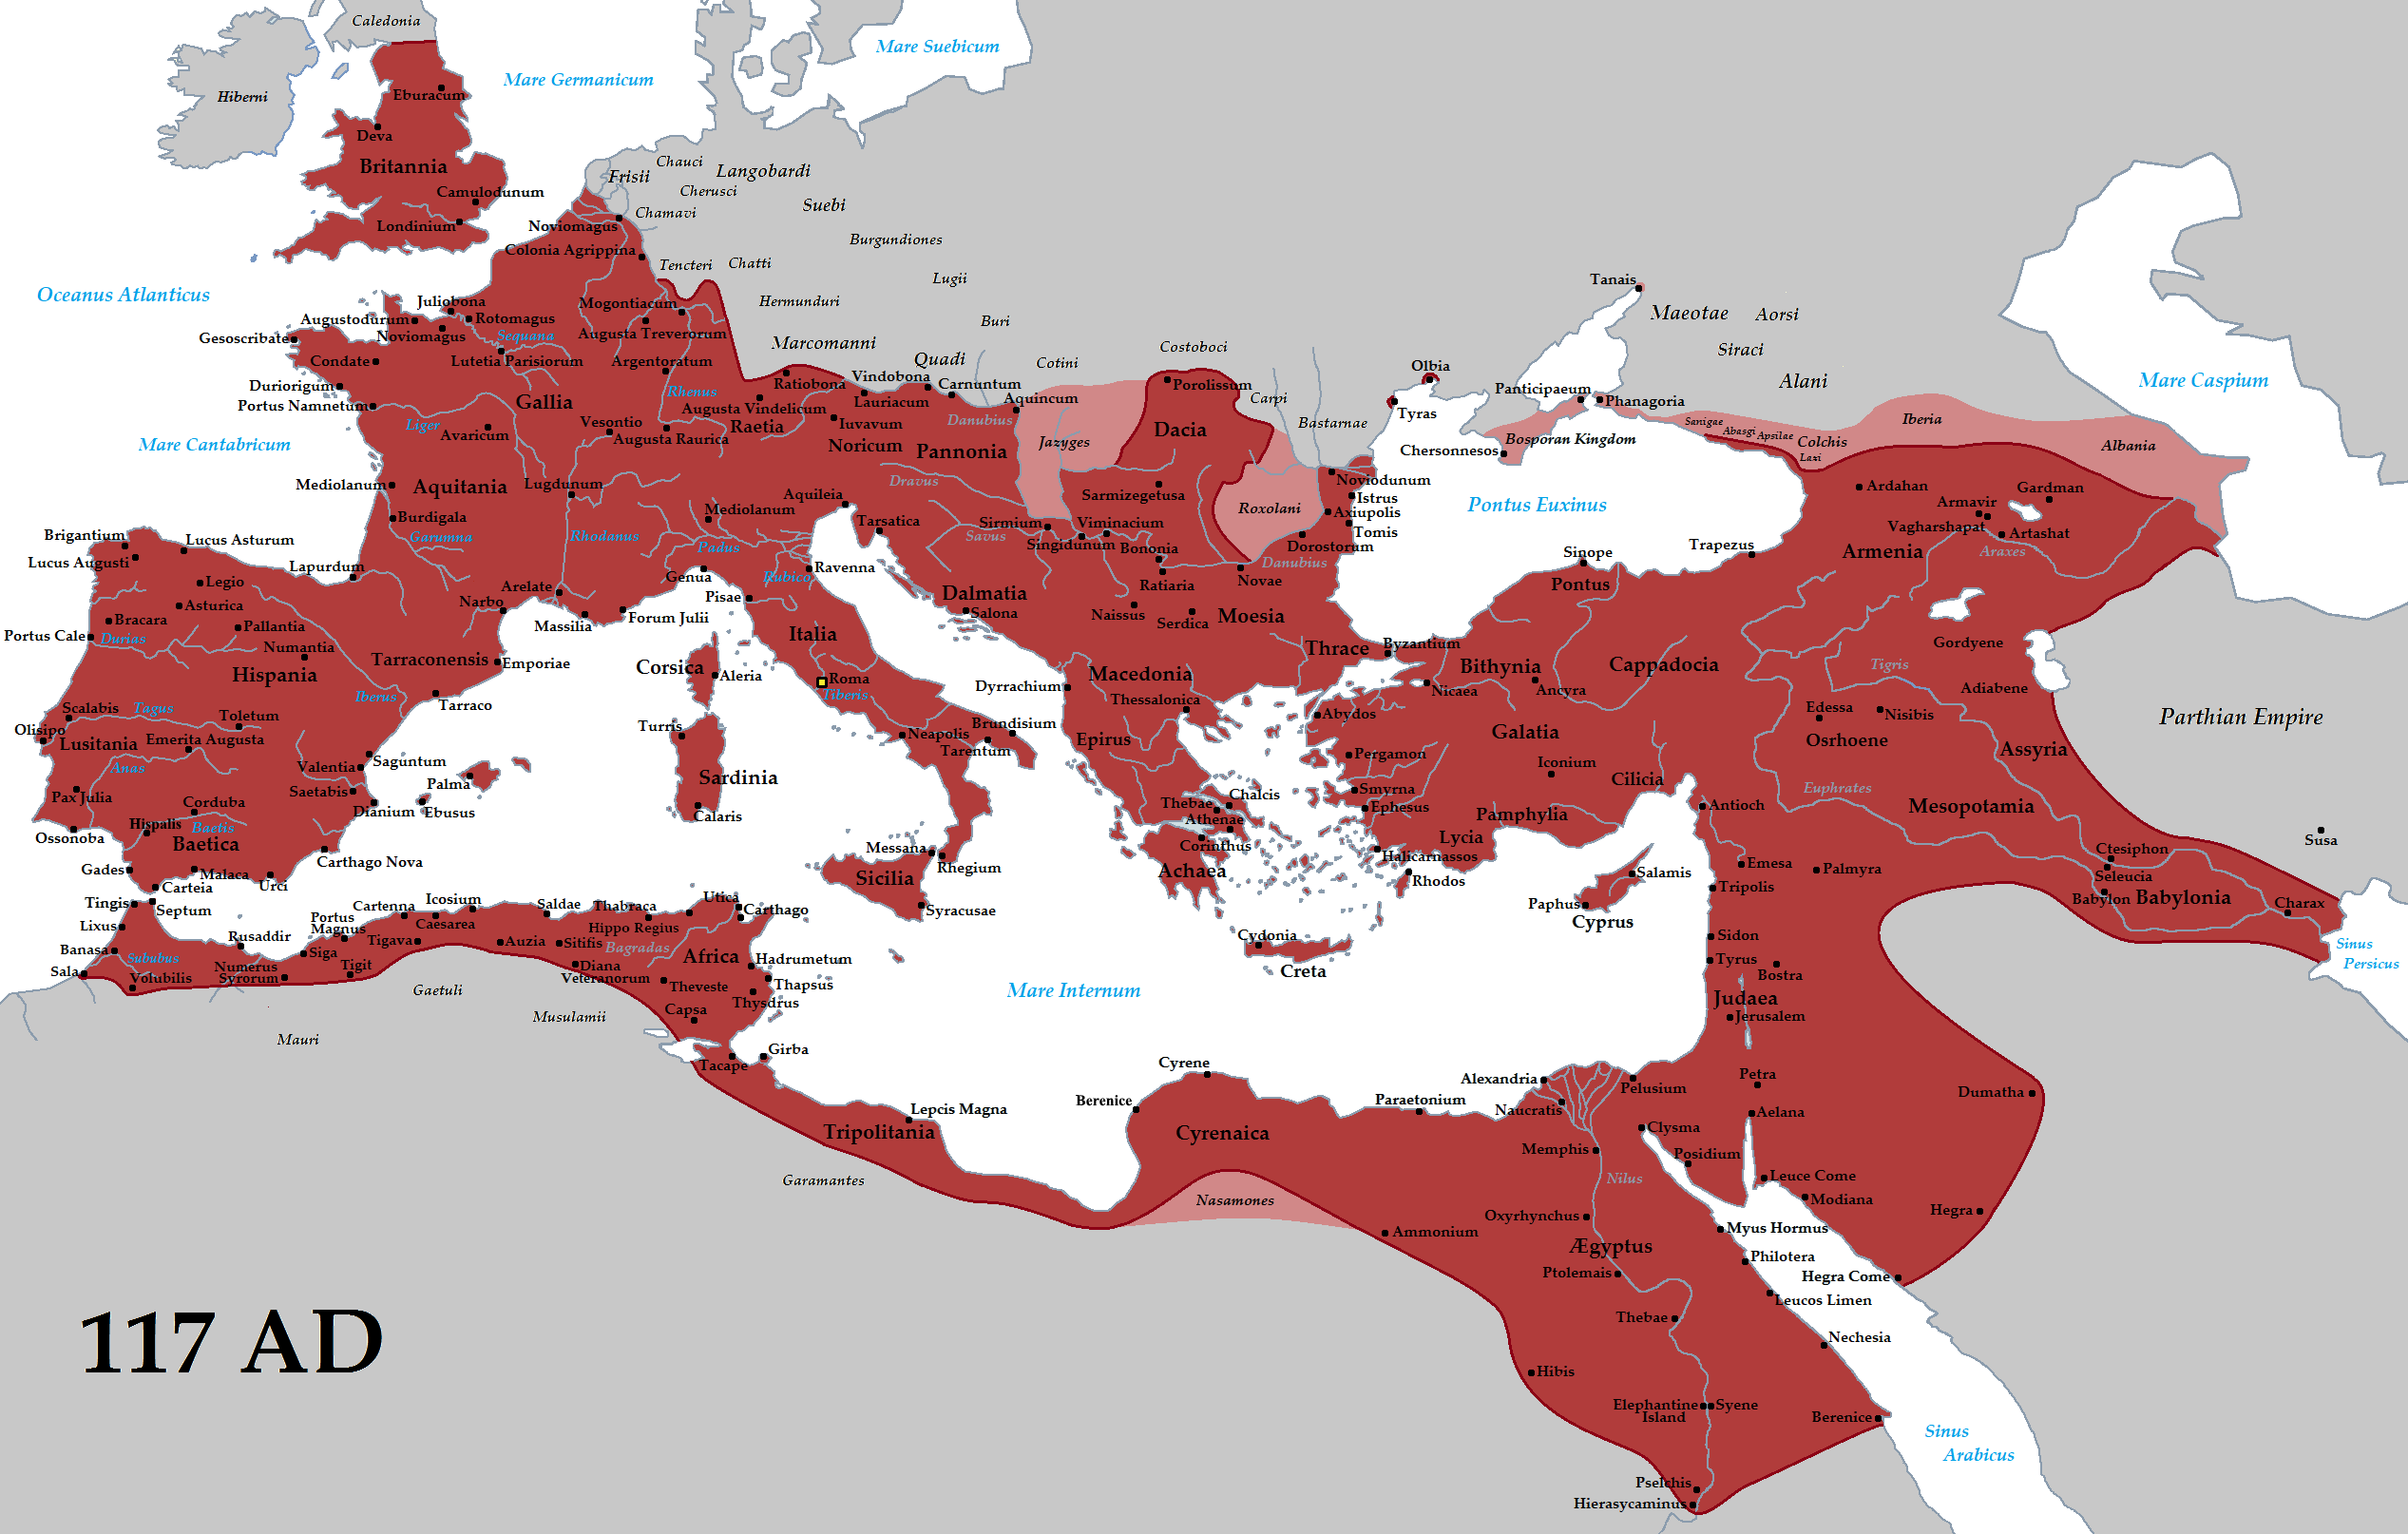 roman empire to 117 ad map Roman Empire Wikipedia roman empire to 117 ad map